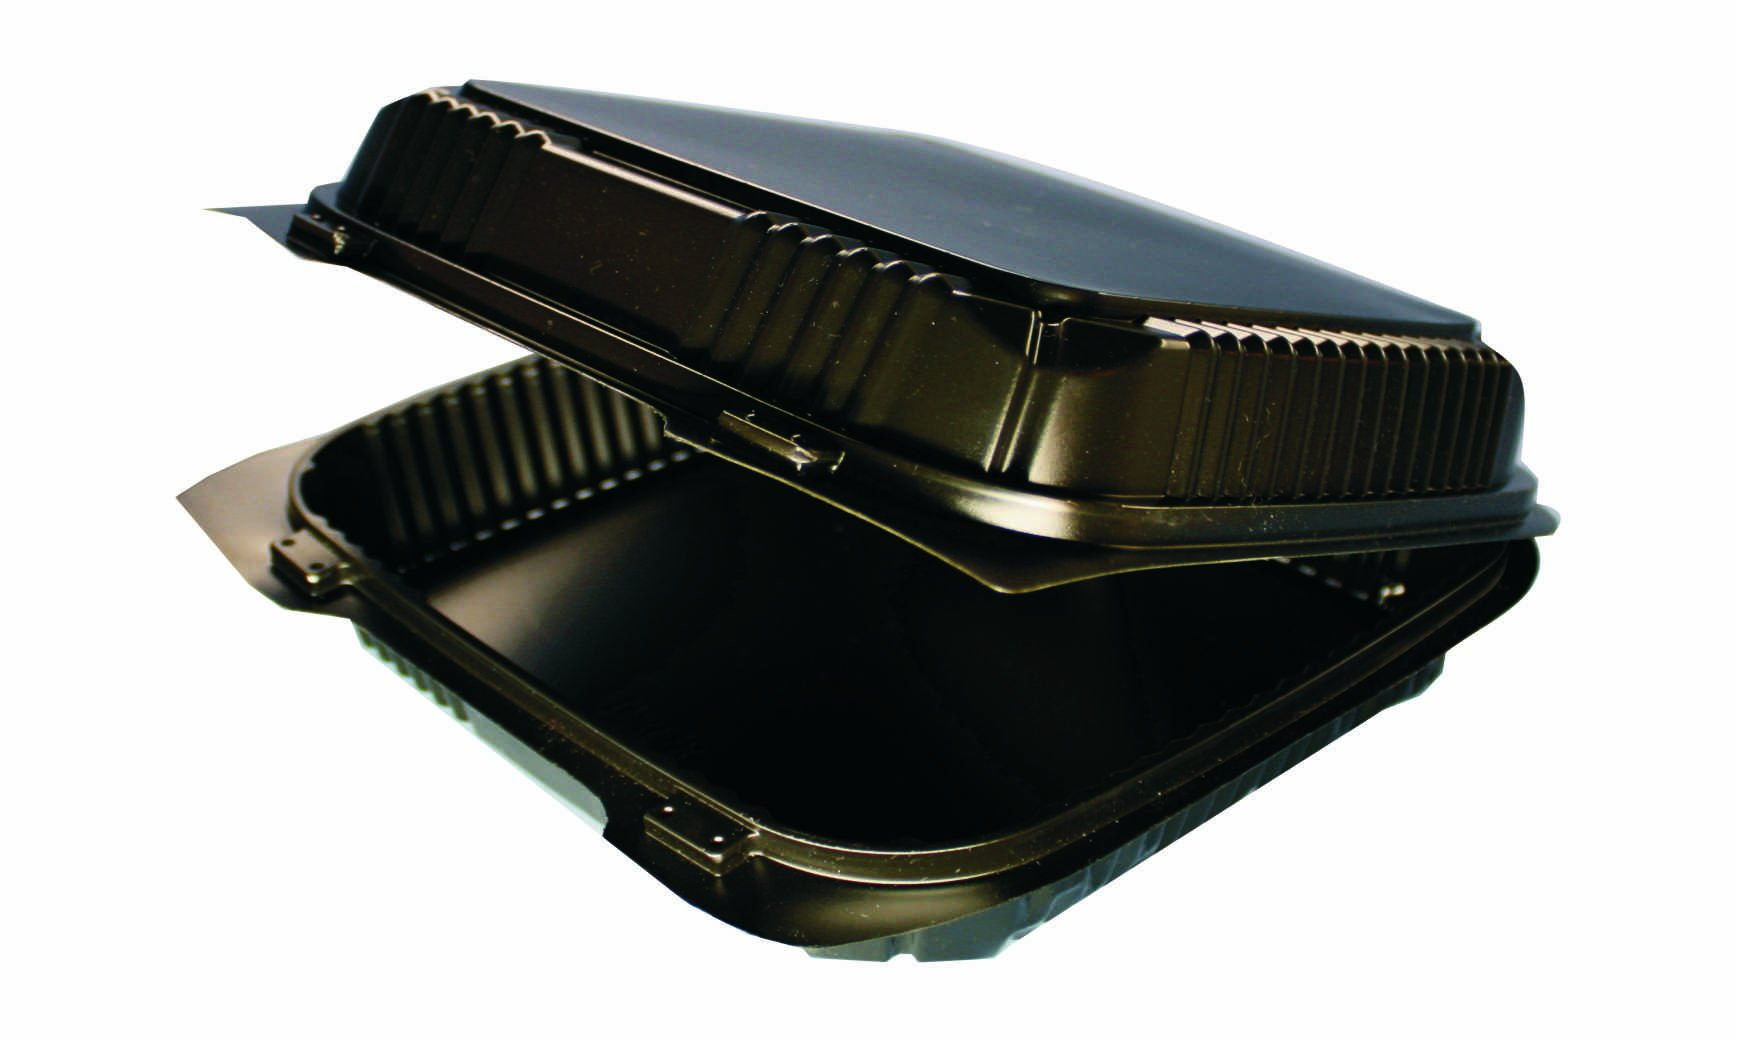 Choice-Pac L1H-1115-Blk Polypropylene Square Hot Clamshell Container with 2-Point Front Closure, 8-3/8'' Length x 8-1/4'' Width x 3'' Height, Large, Black (Case of 300)